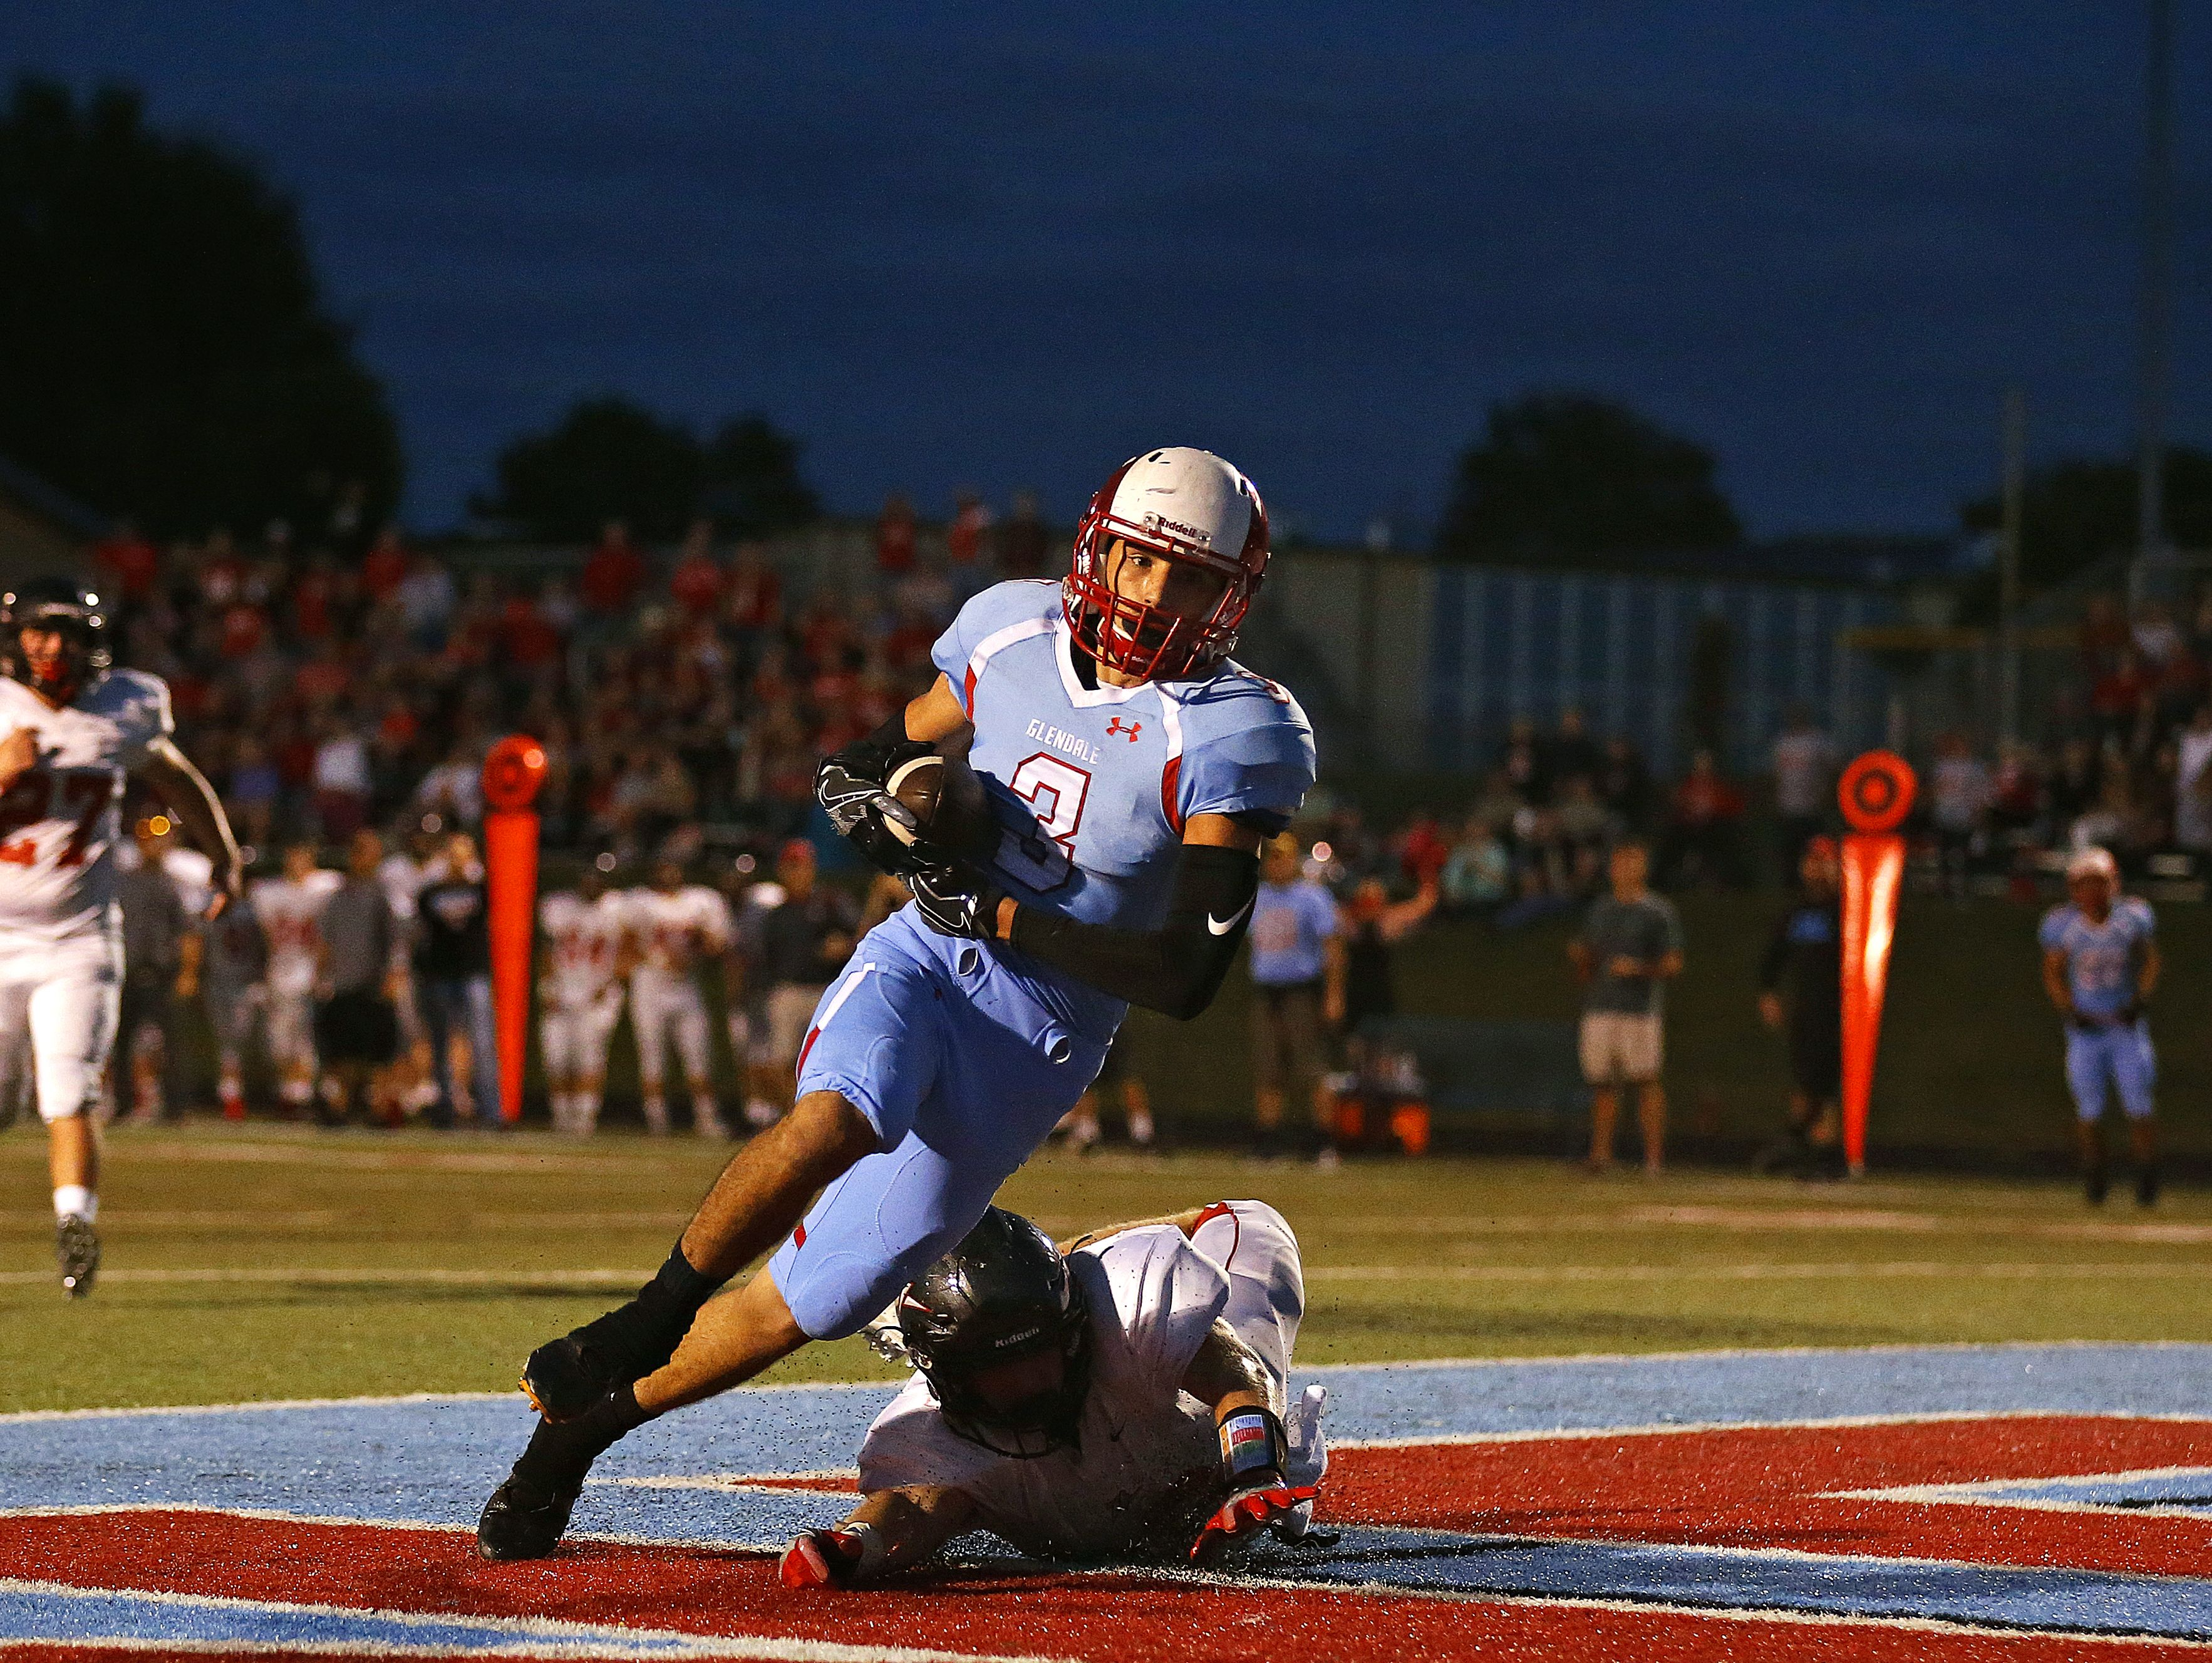 Glendale wide receiver Corbin Lukes catches a touchdown pass from quarterback Alex Huston (not pictured) against West Plains at Lowe Stadium in Springfield.